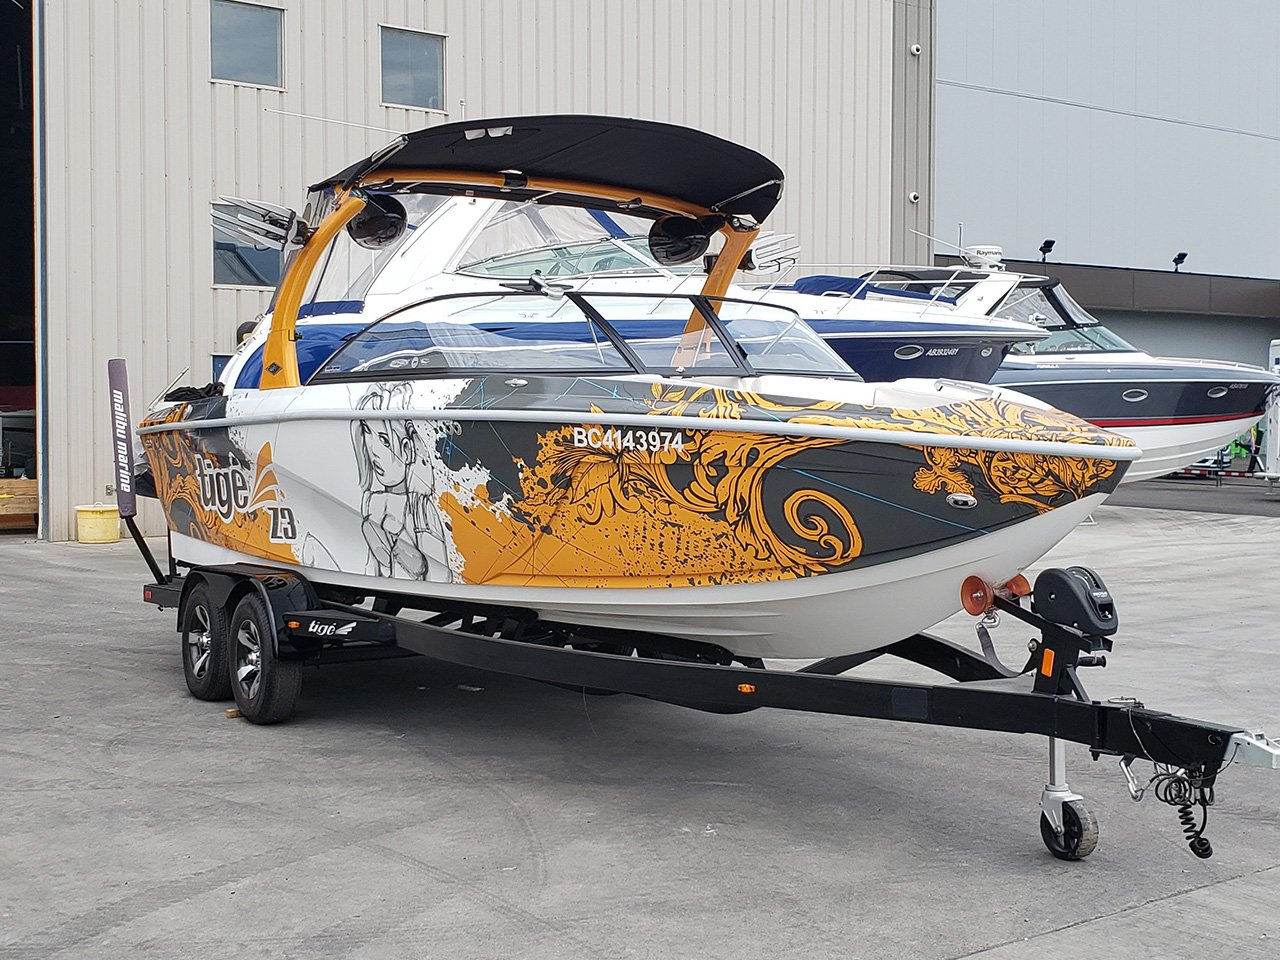 2013 Tige Z3 Boat For sale by Malibu Marine in Kelowna, BC